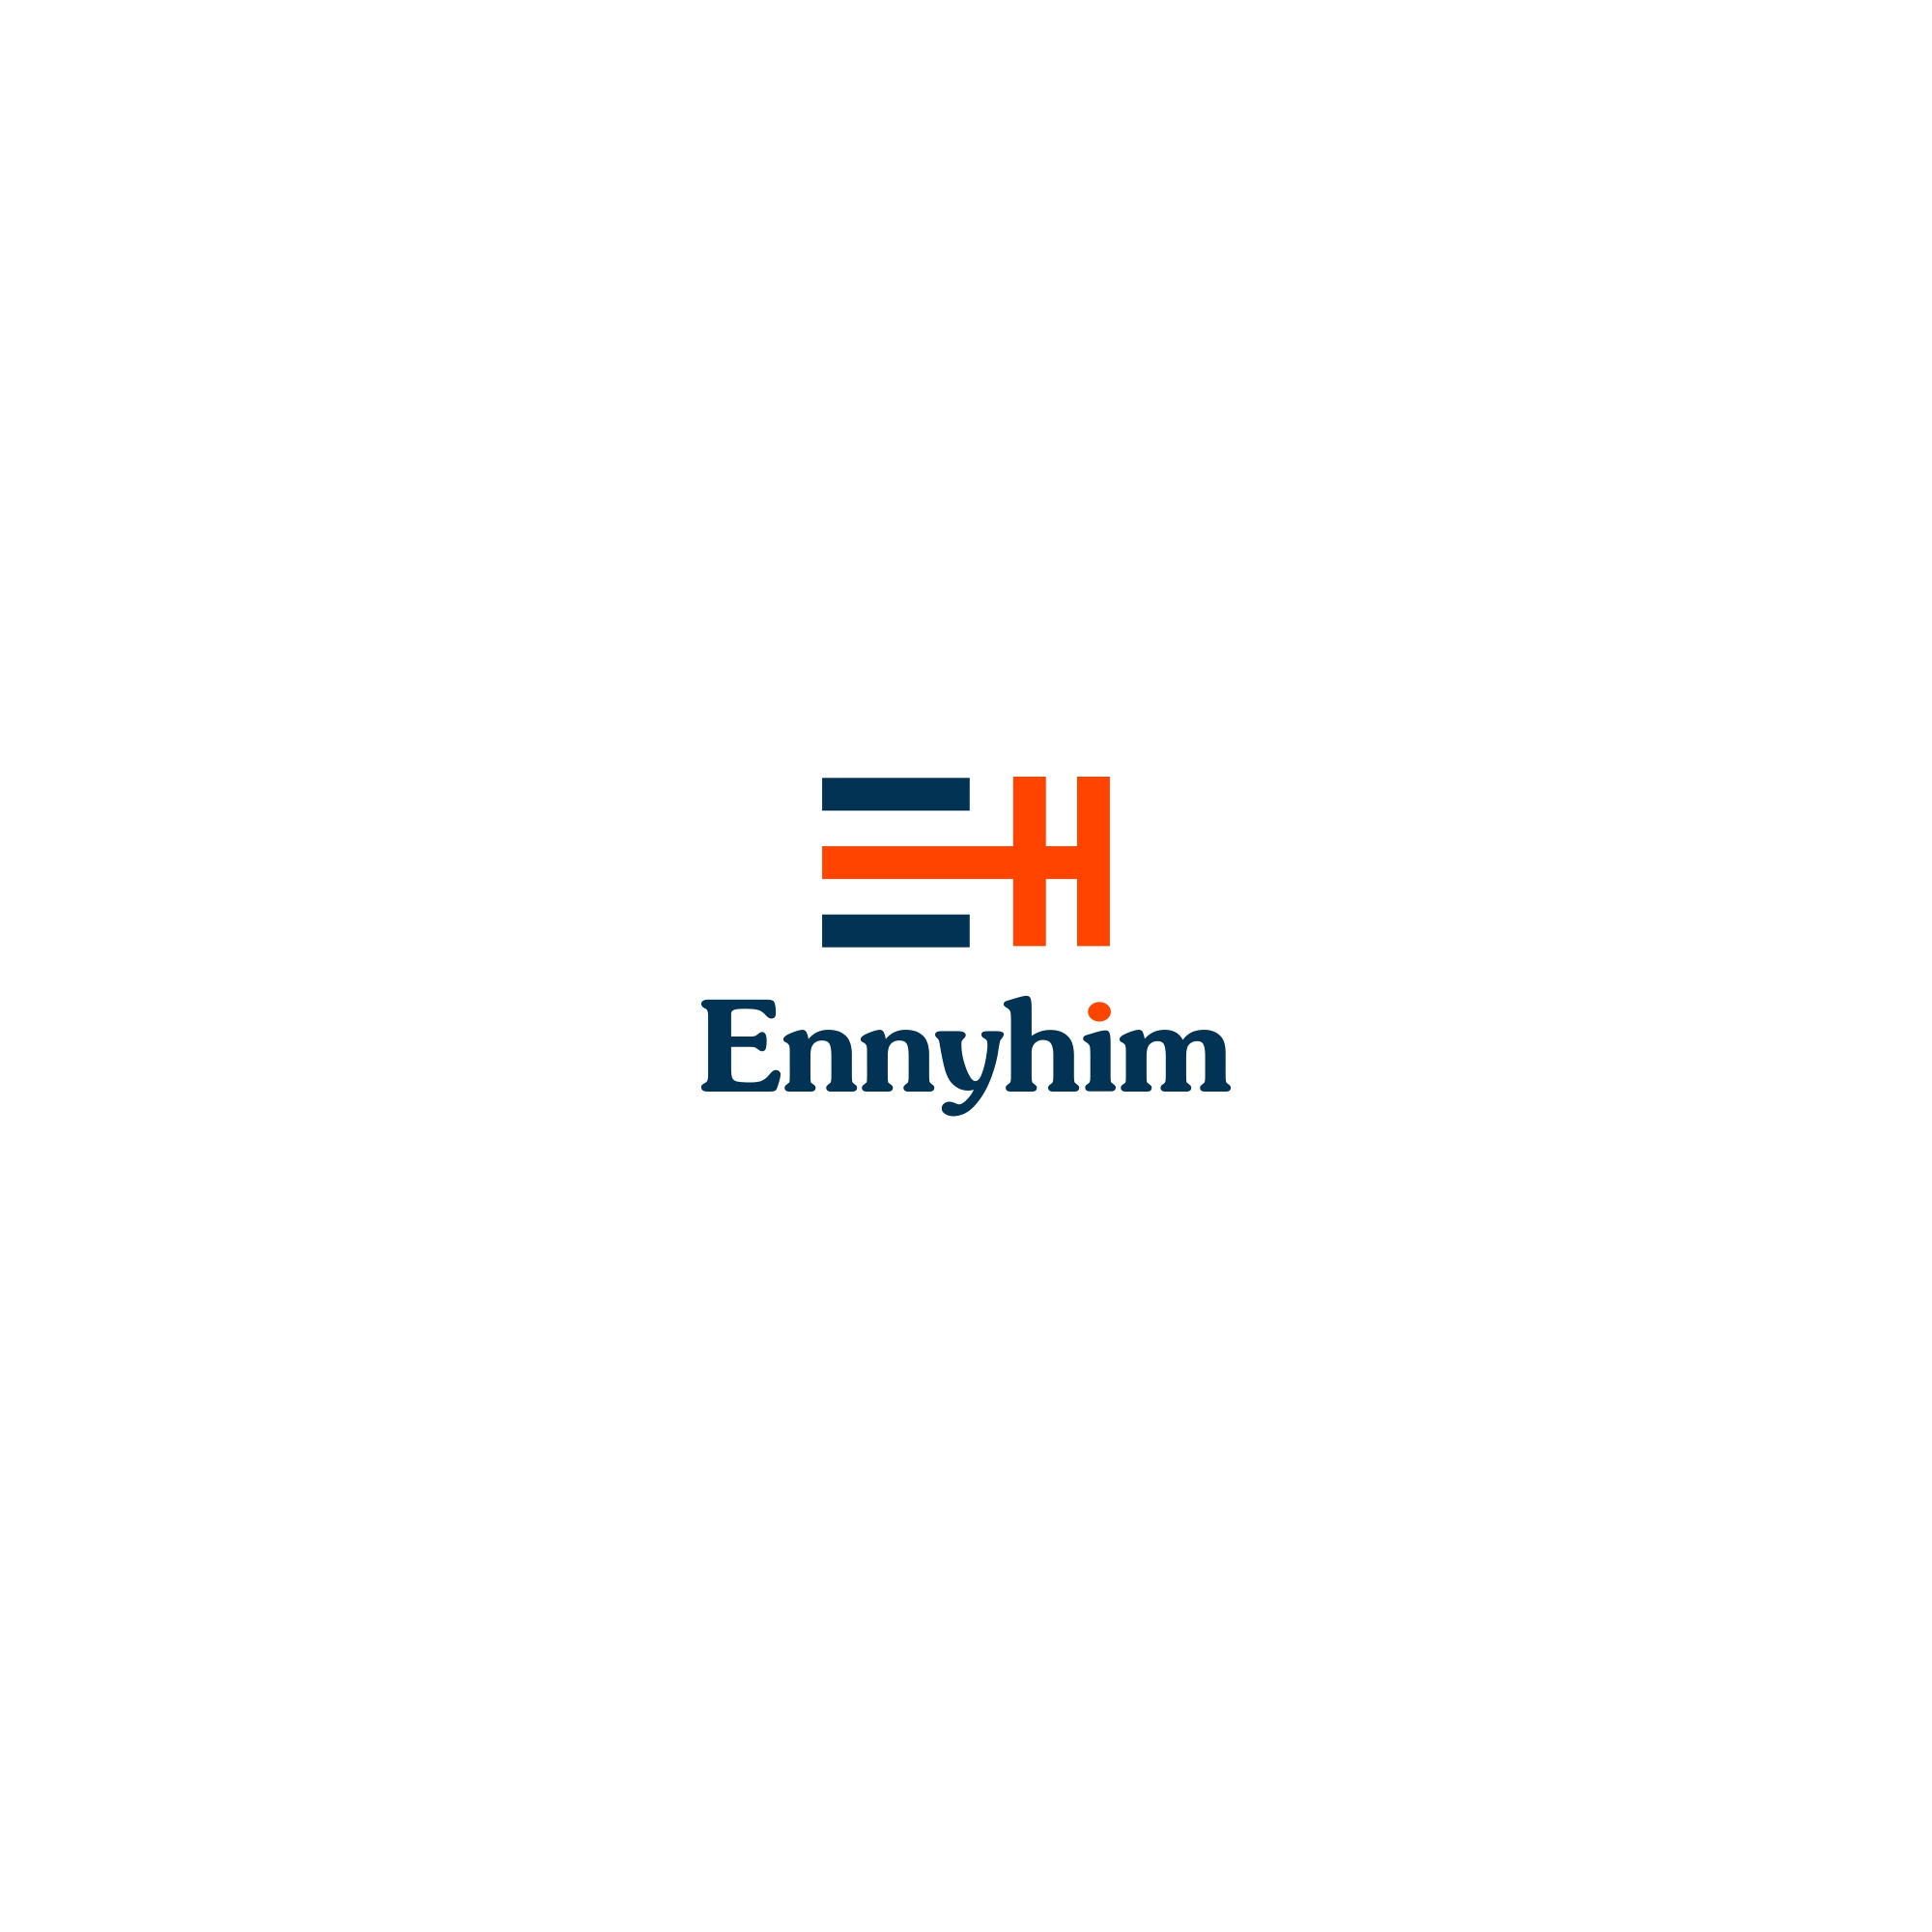 Ennyhim Rebrands, Launches New Logo